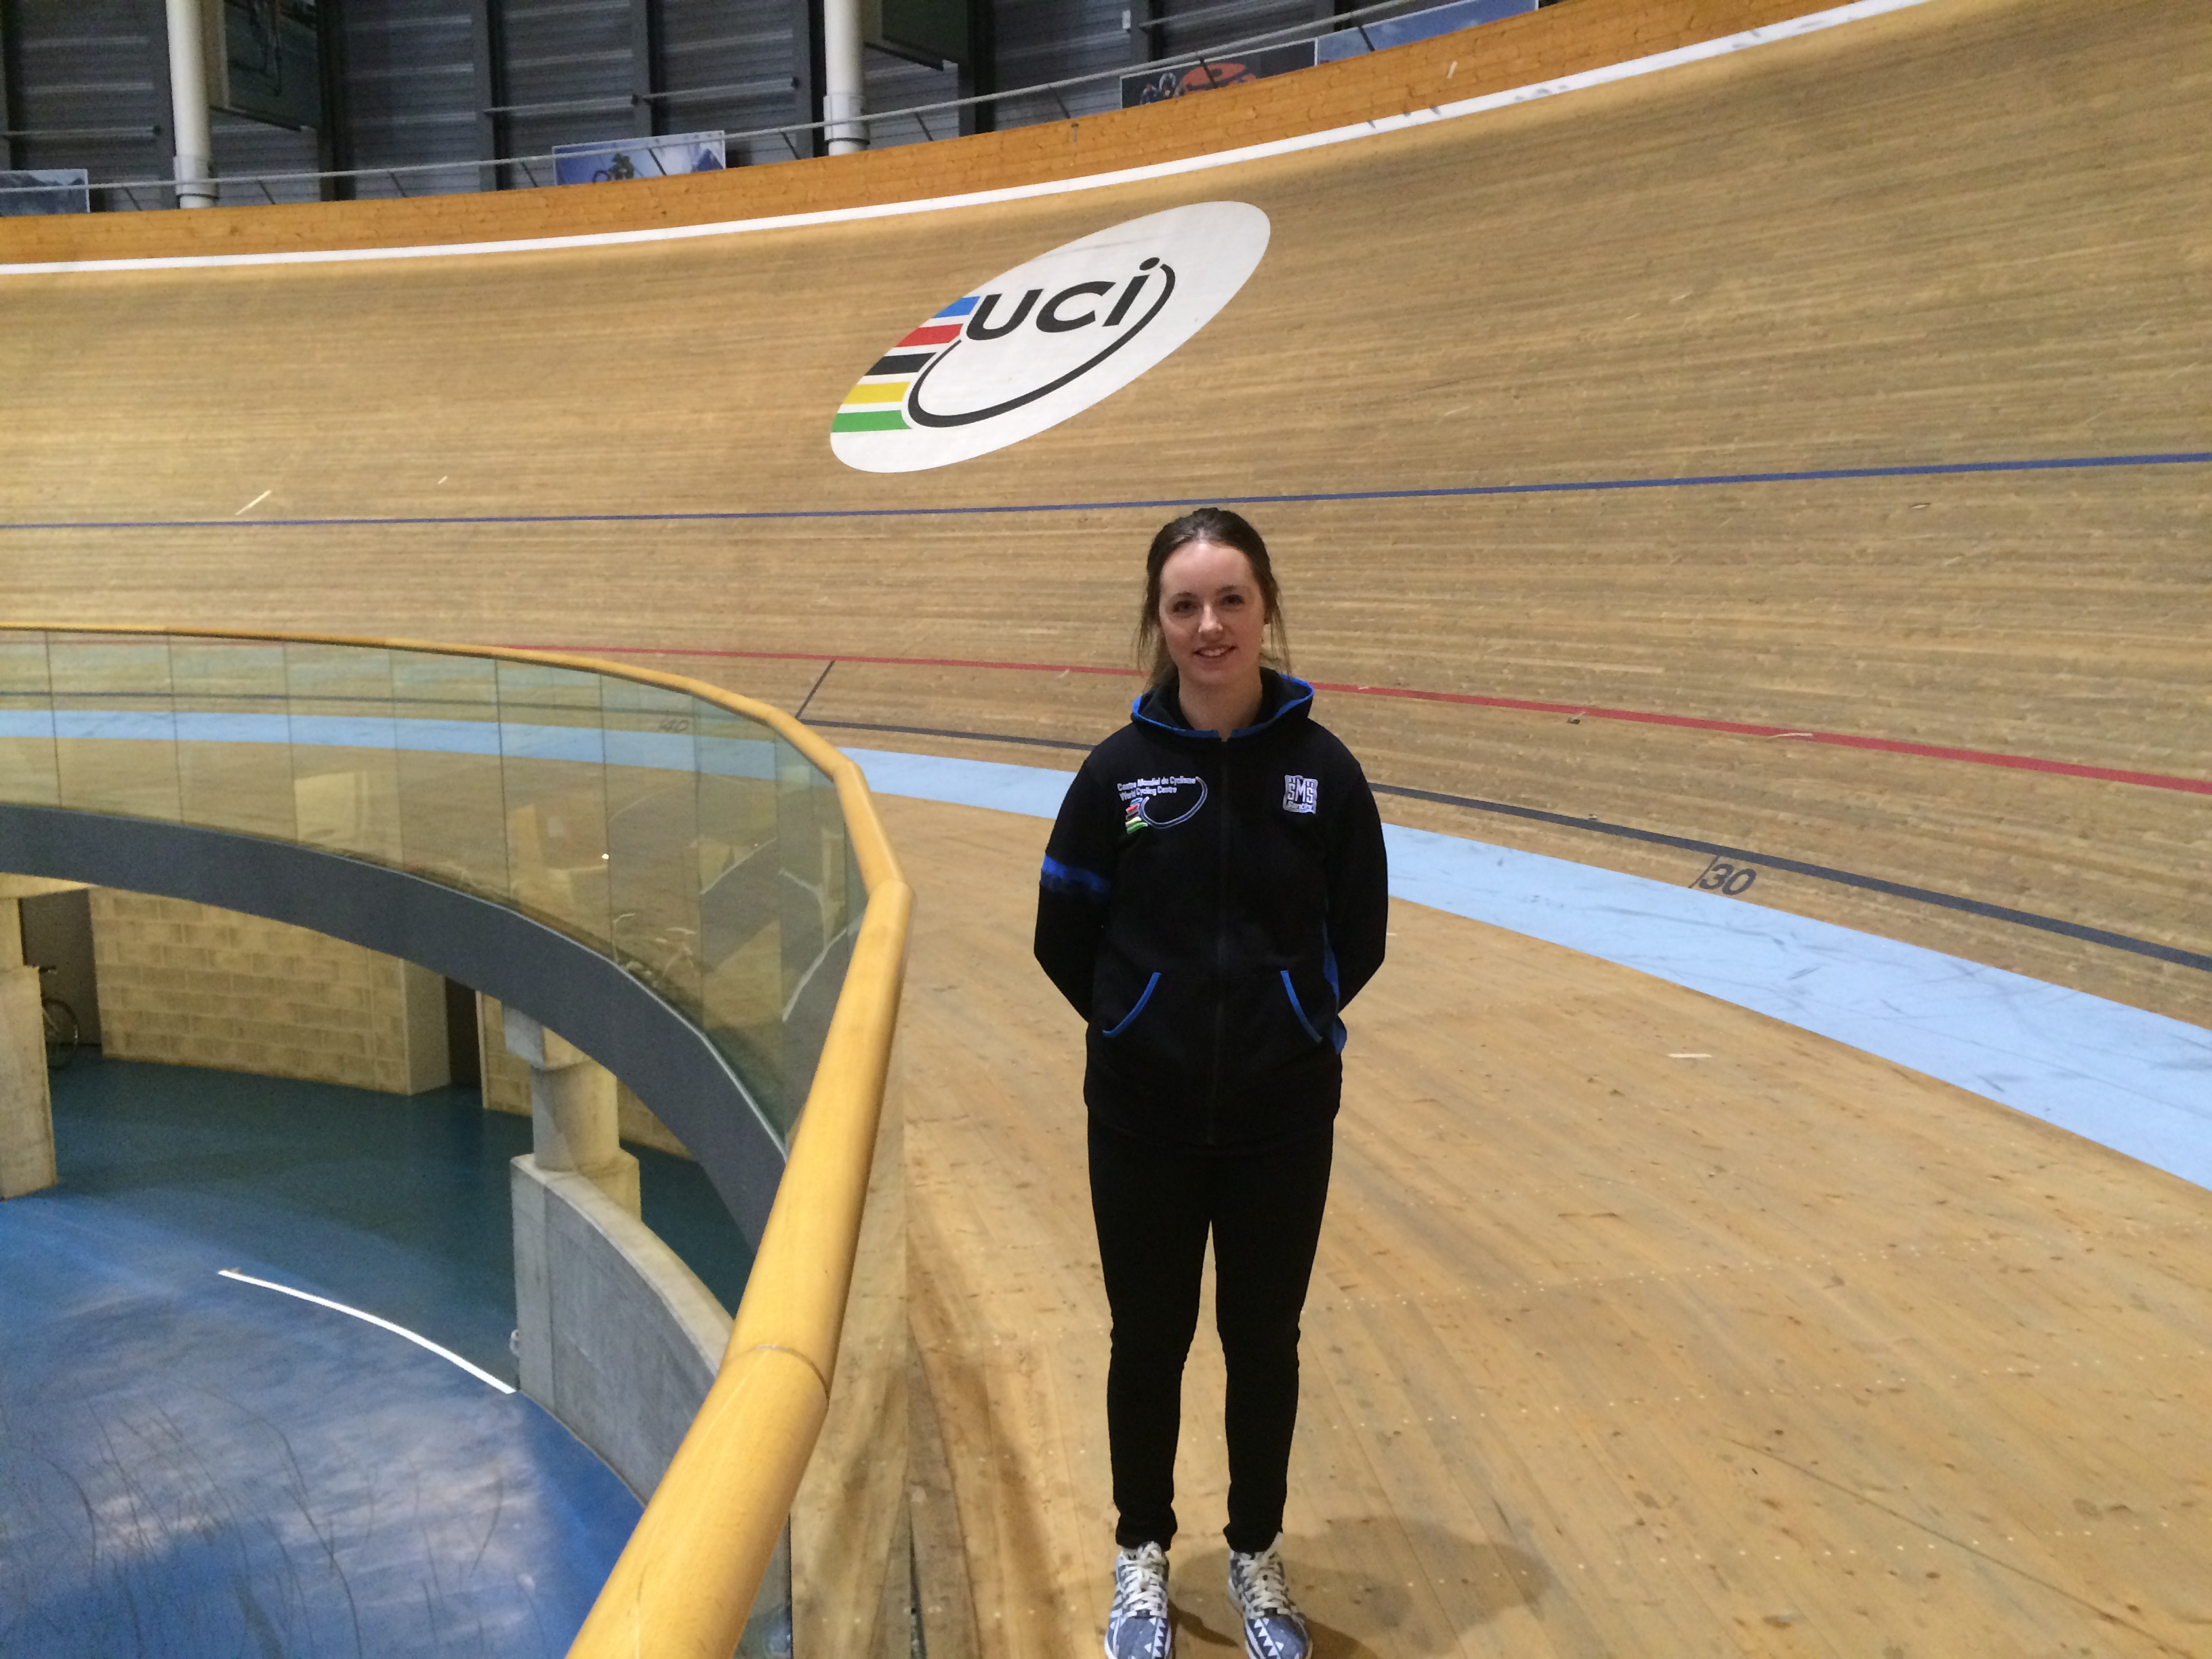 Lauren Gourlay on her internship in Switzerland at the UCI World Cycling Centre